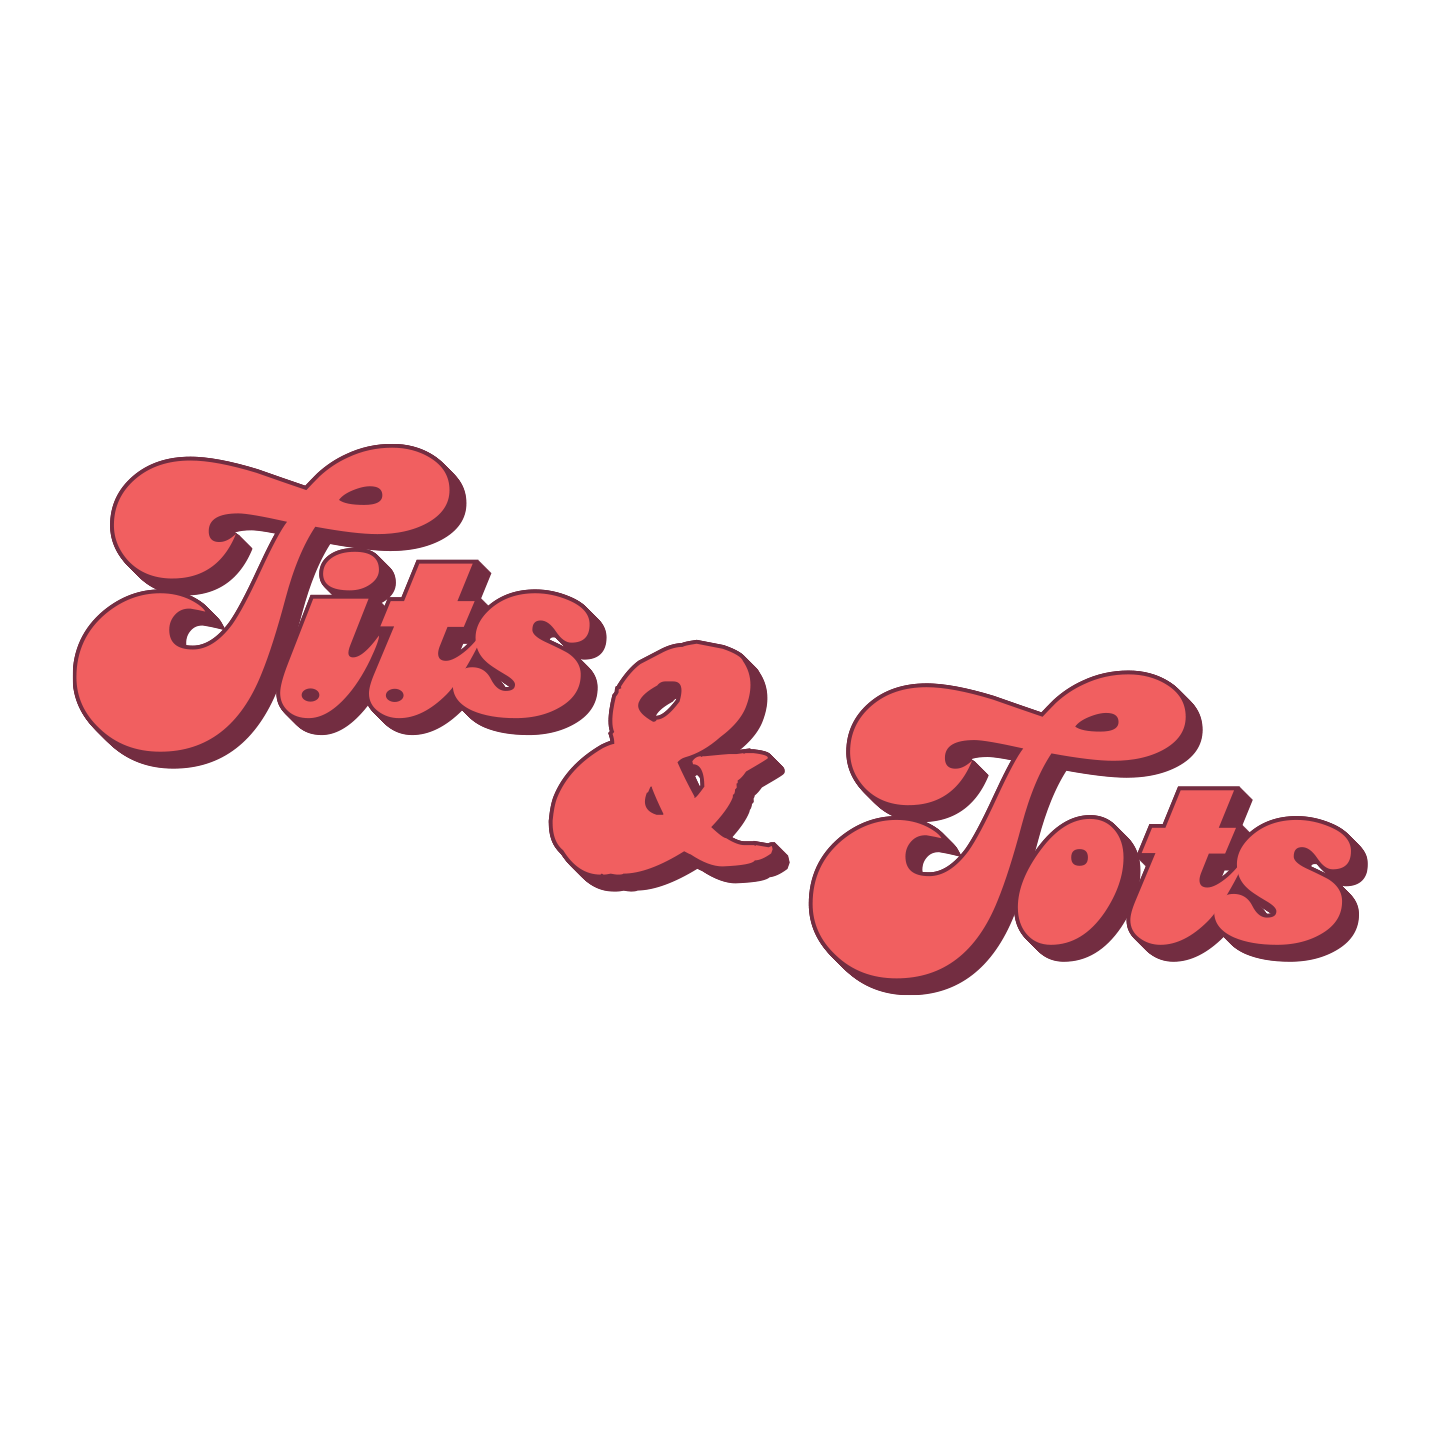 Tits and Tots 2019 Parksville BC Vancouver Island Canada